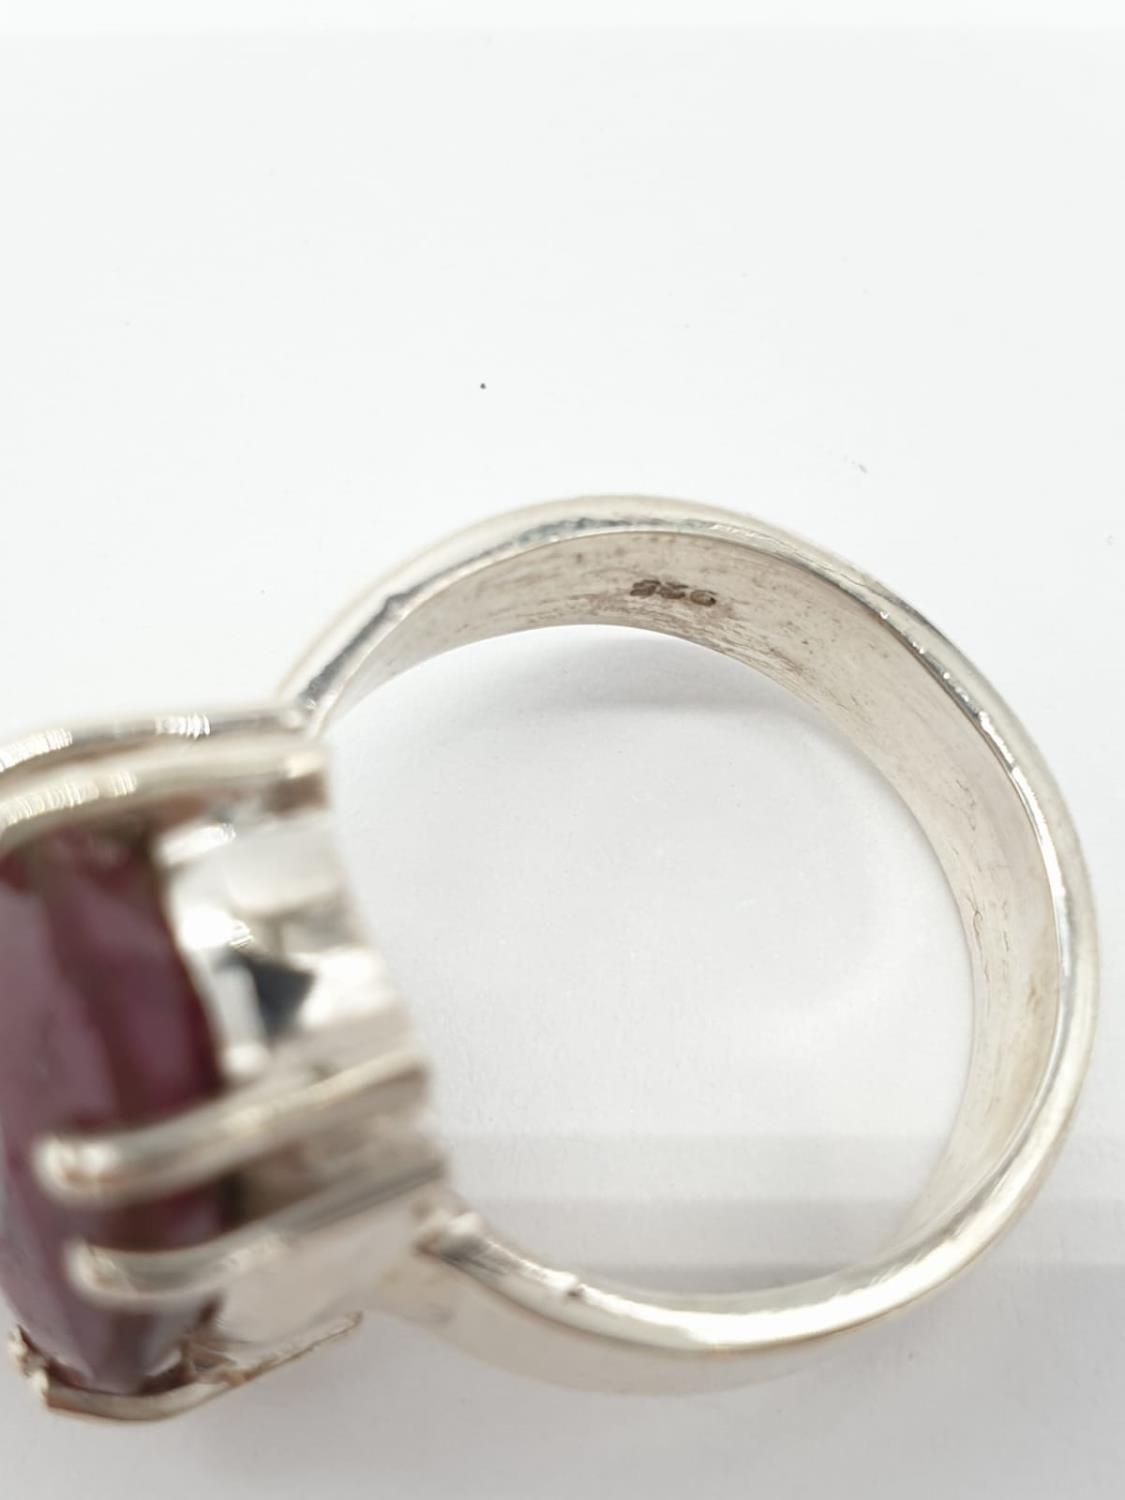 Dressed ruby silver N size ring - Image 4 of 4